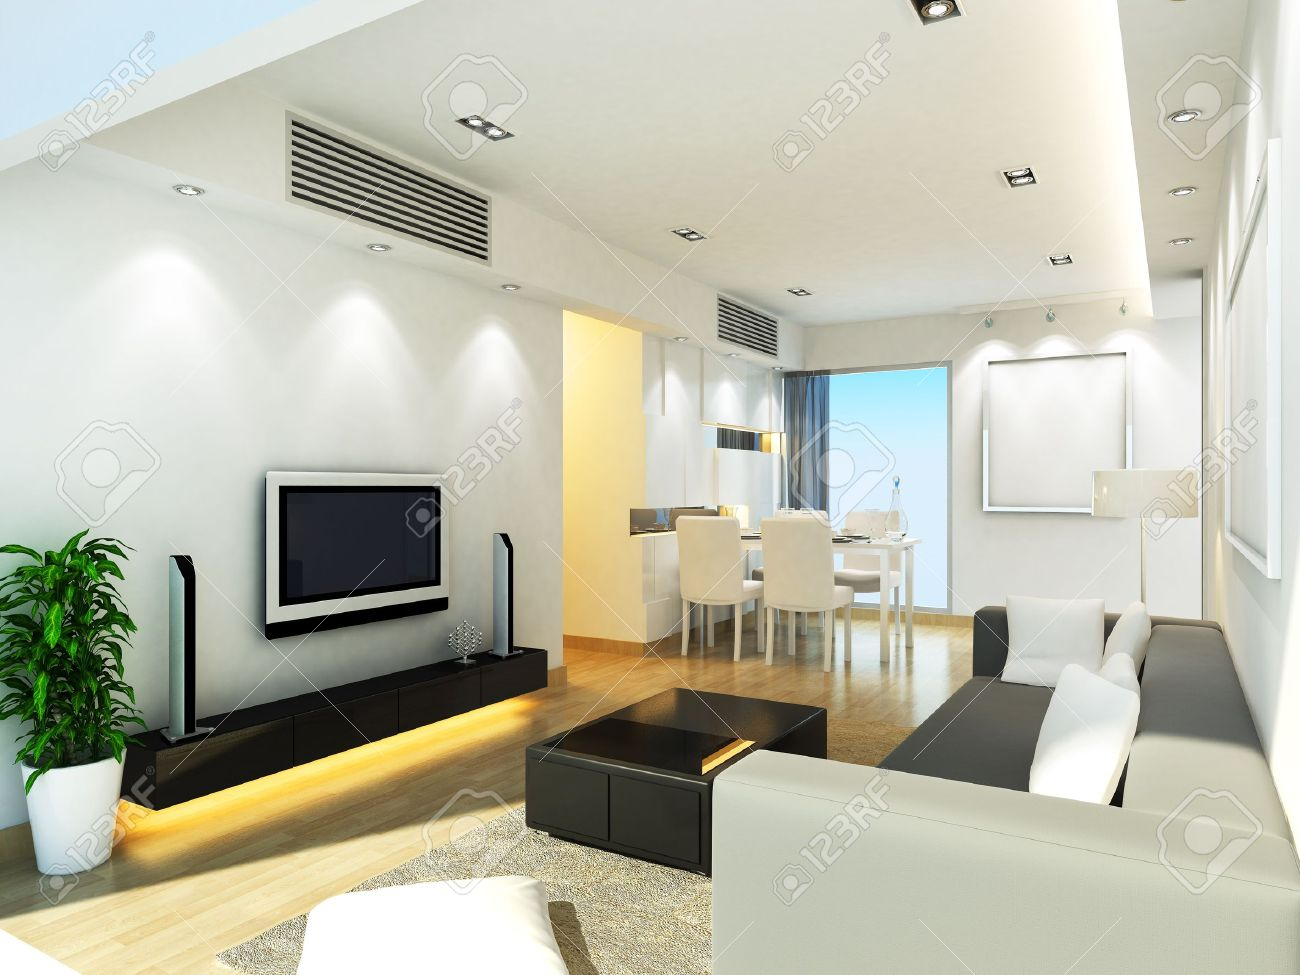 Modern Living Room Ceiling Design Modern Living Room Design Stock Photo Picture And Royalty Free